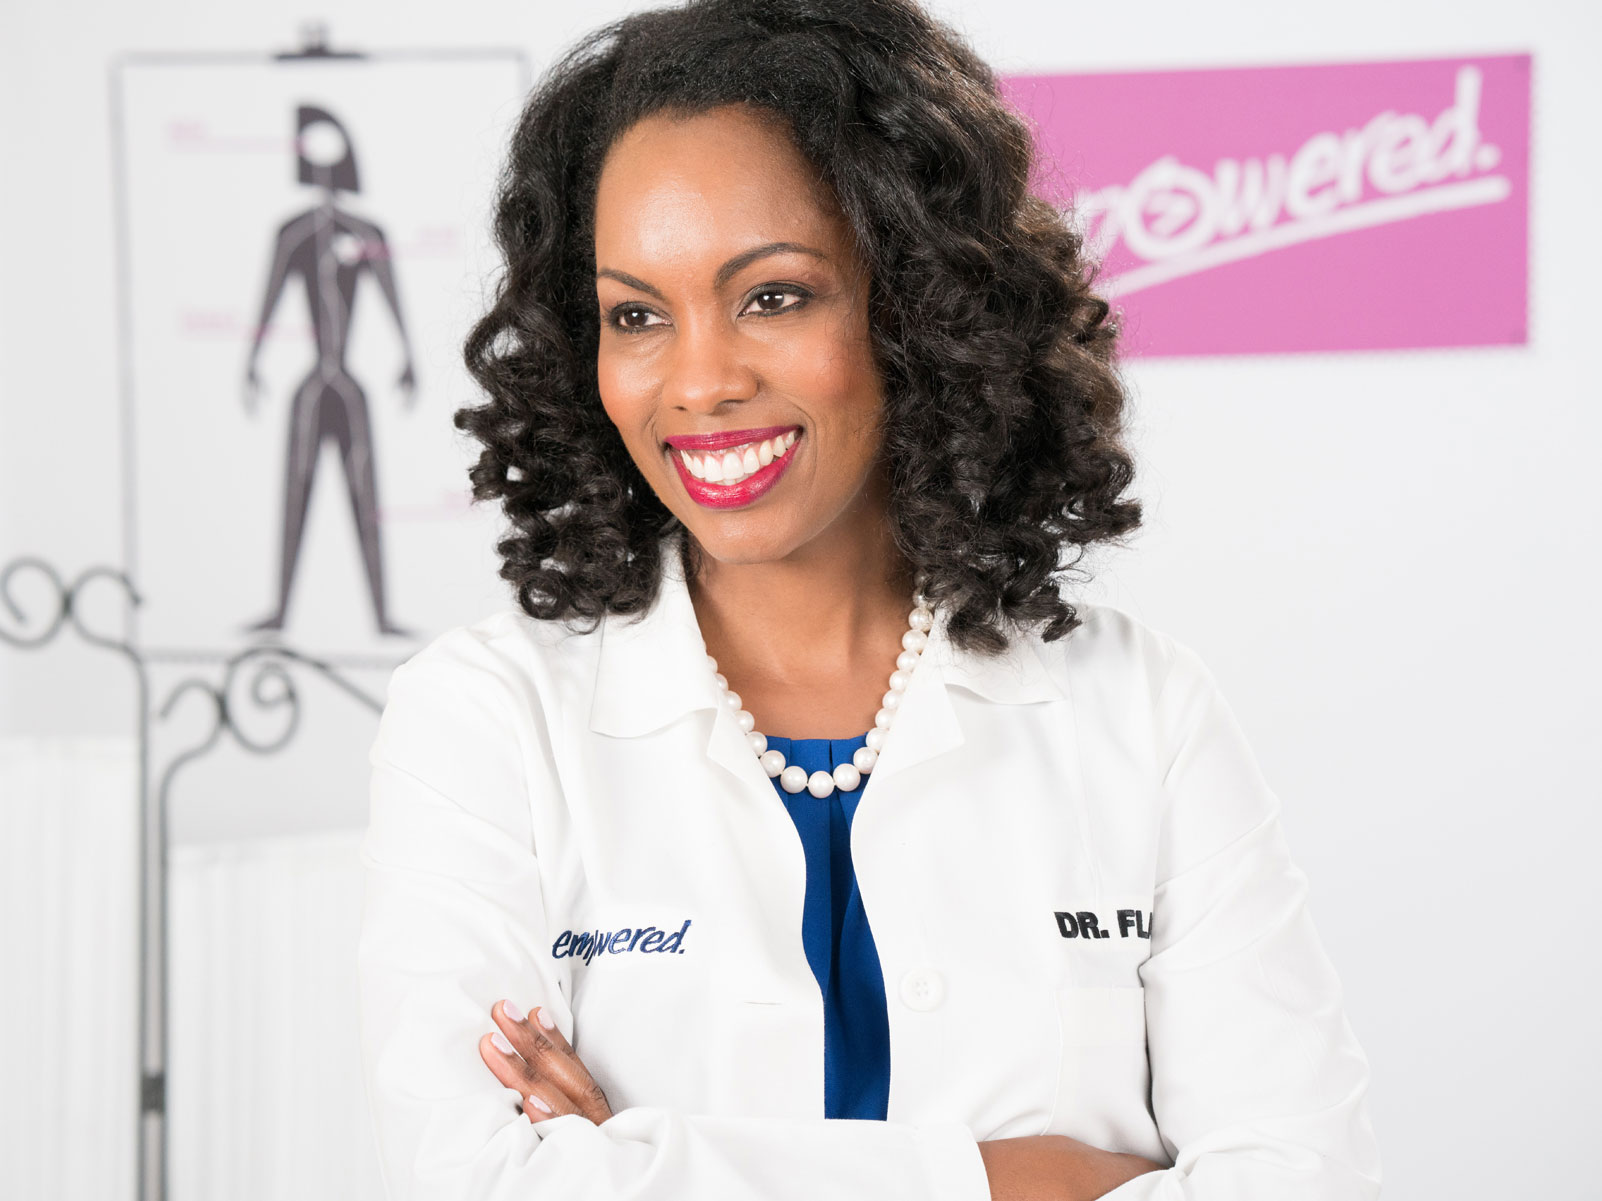 HIV specialist Dr. Charlene Flash smiling